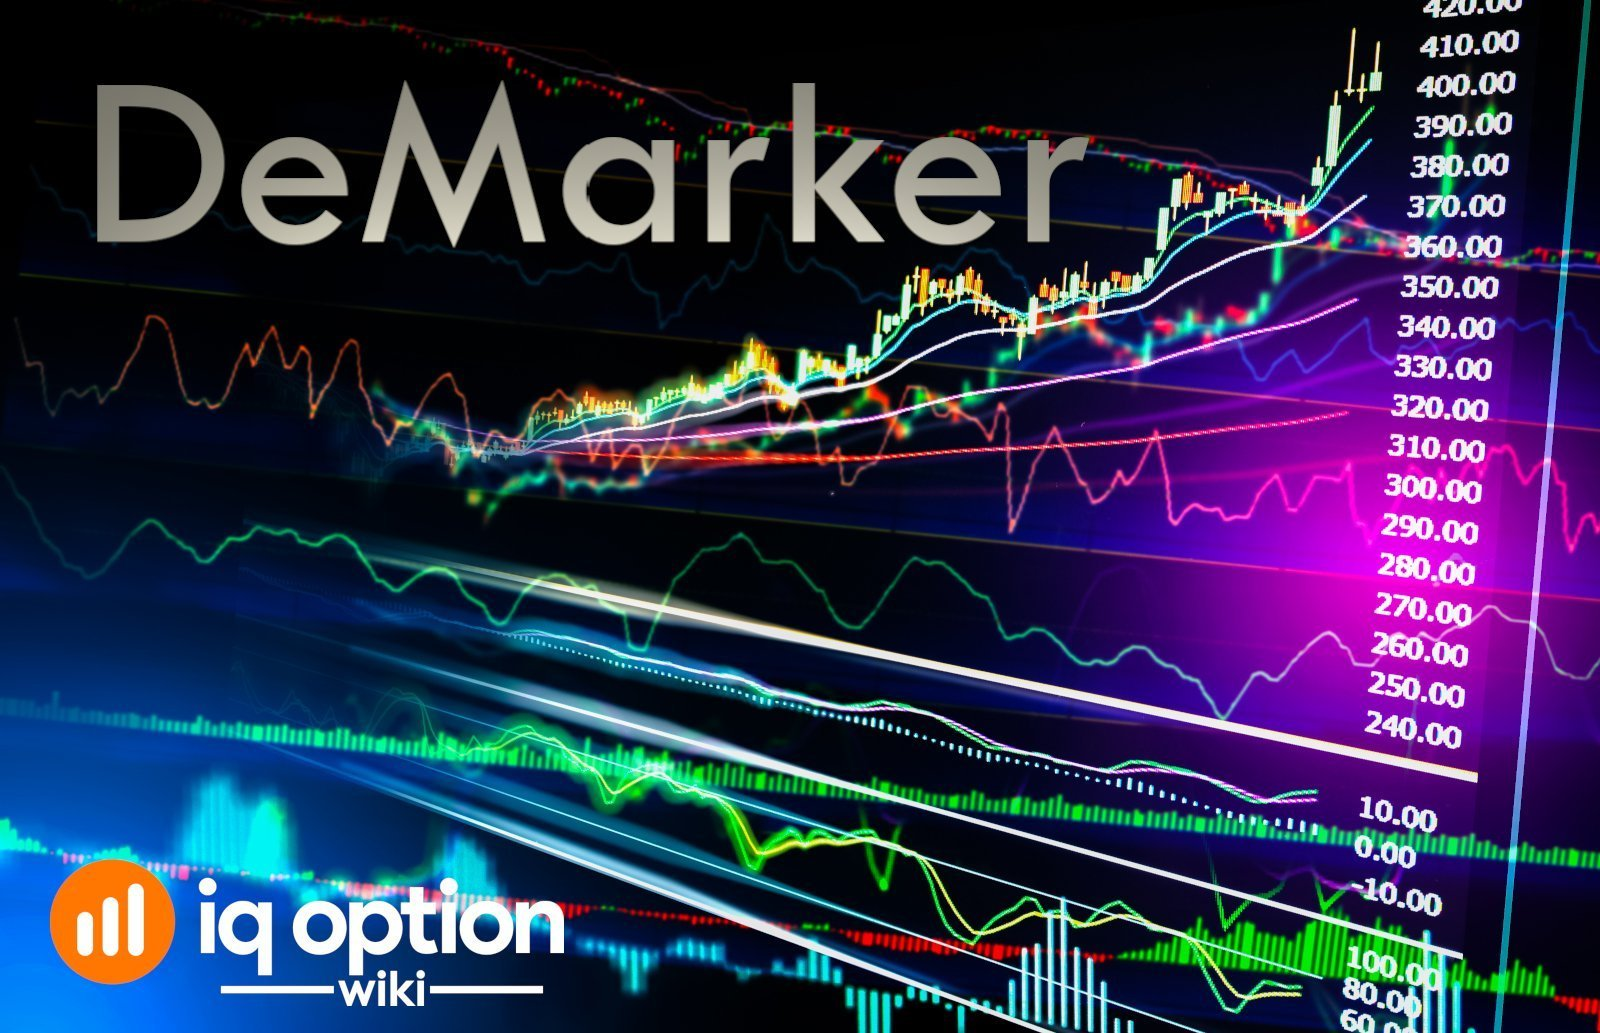 demarker at iq option